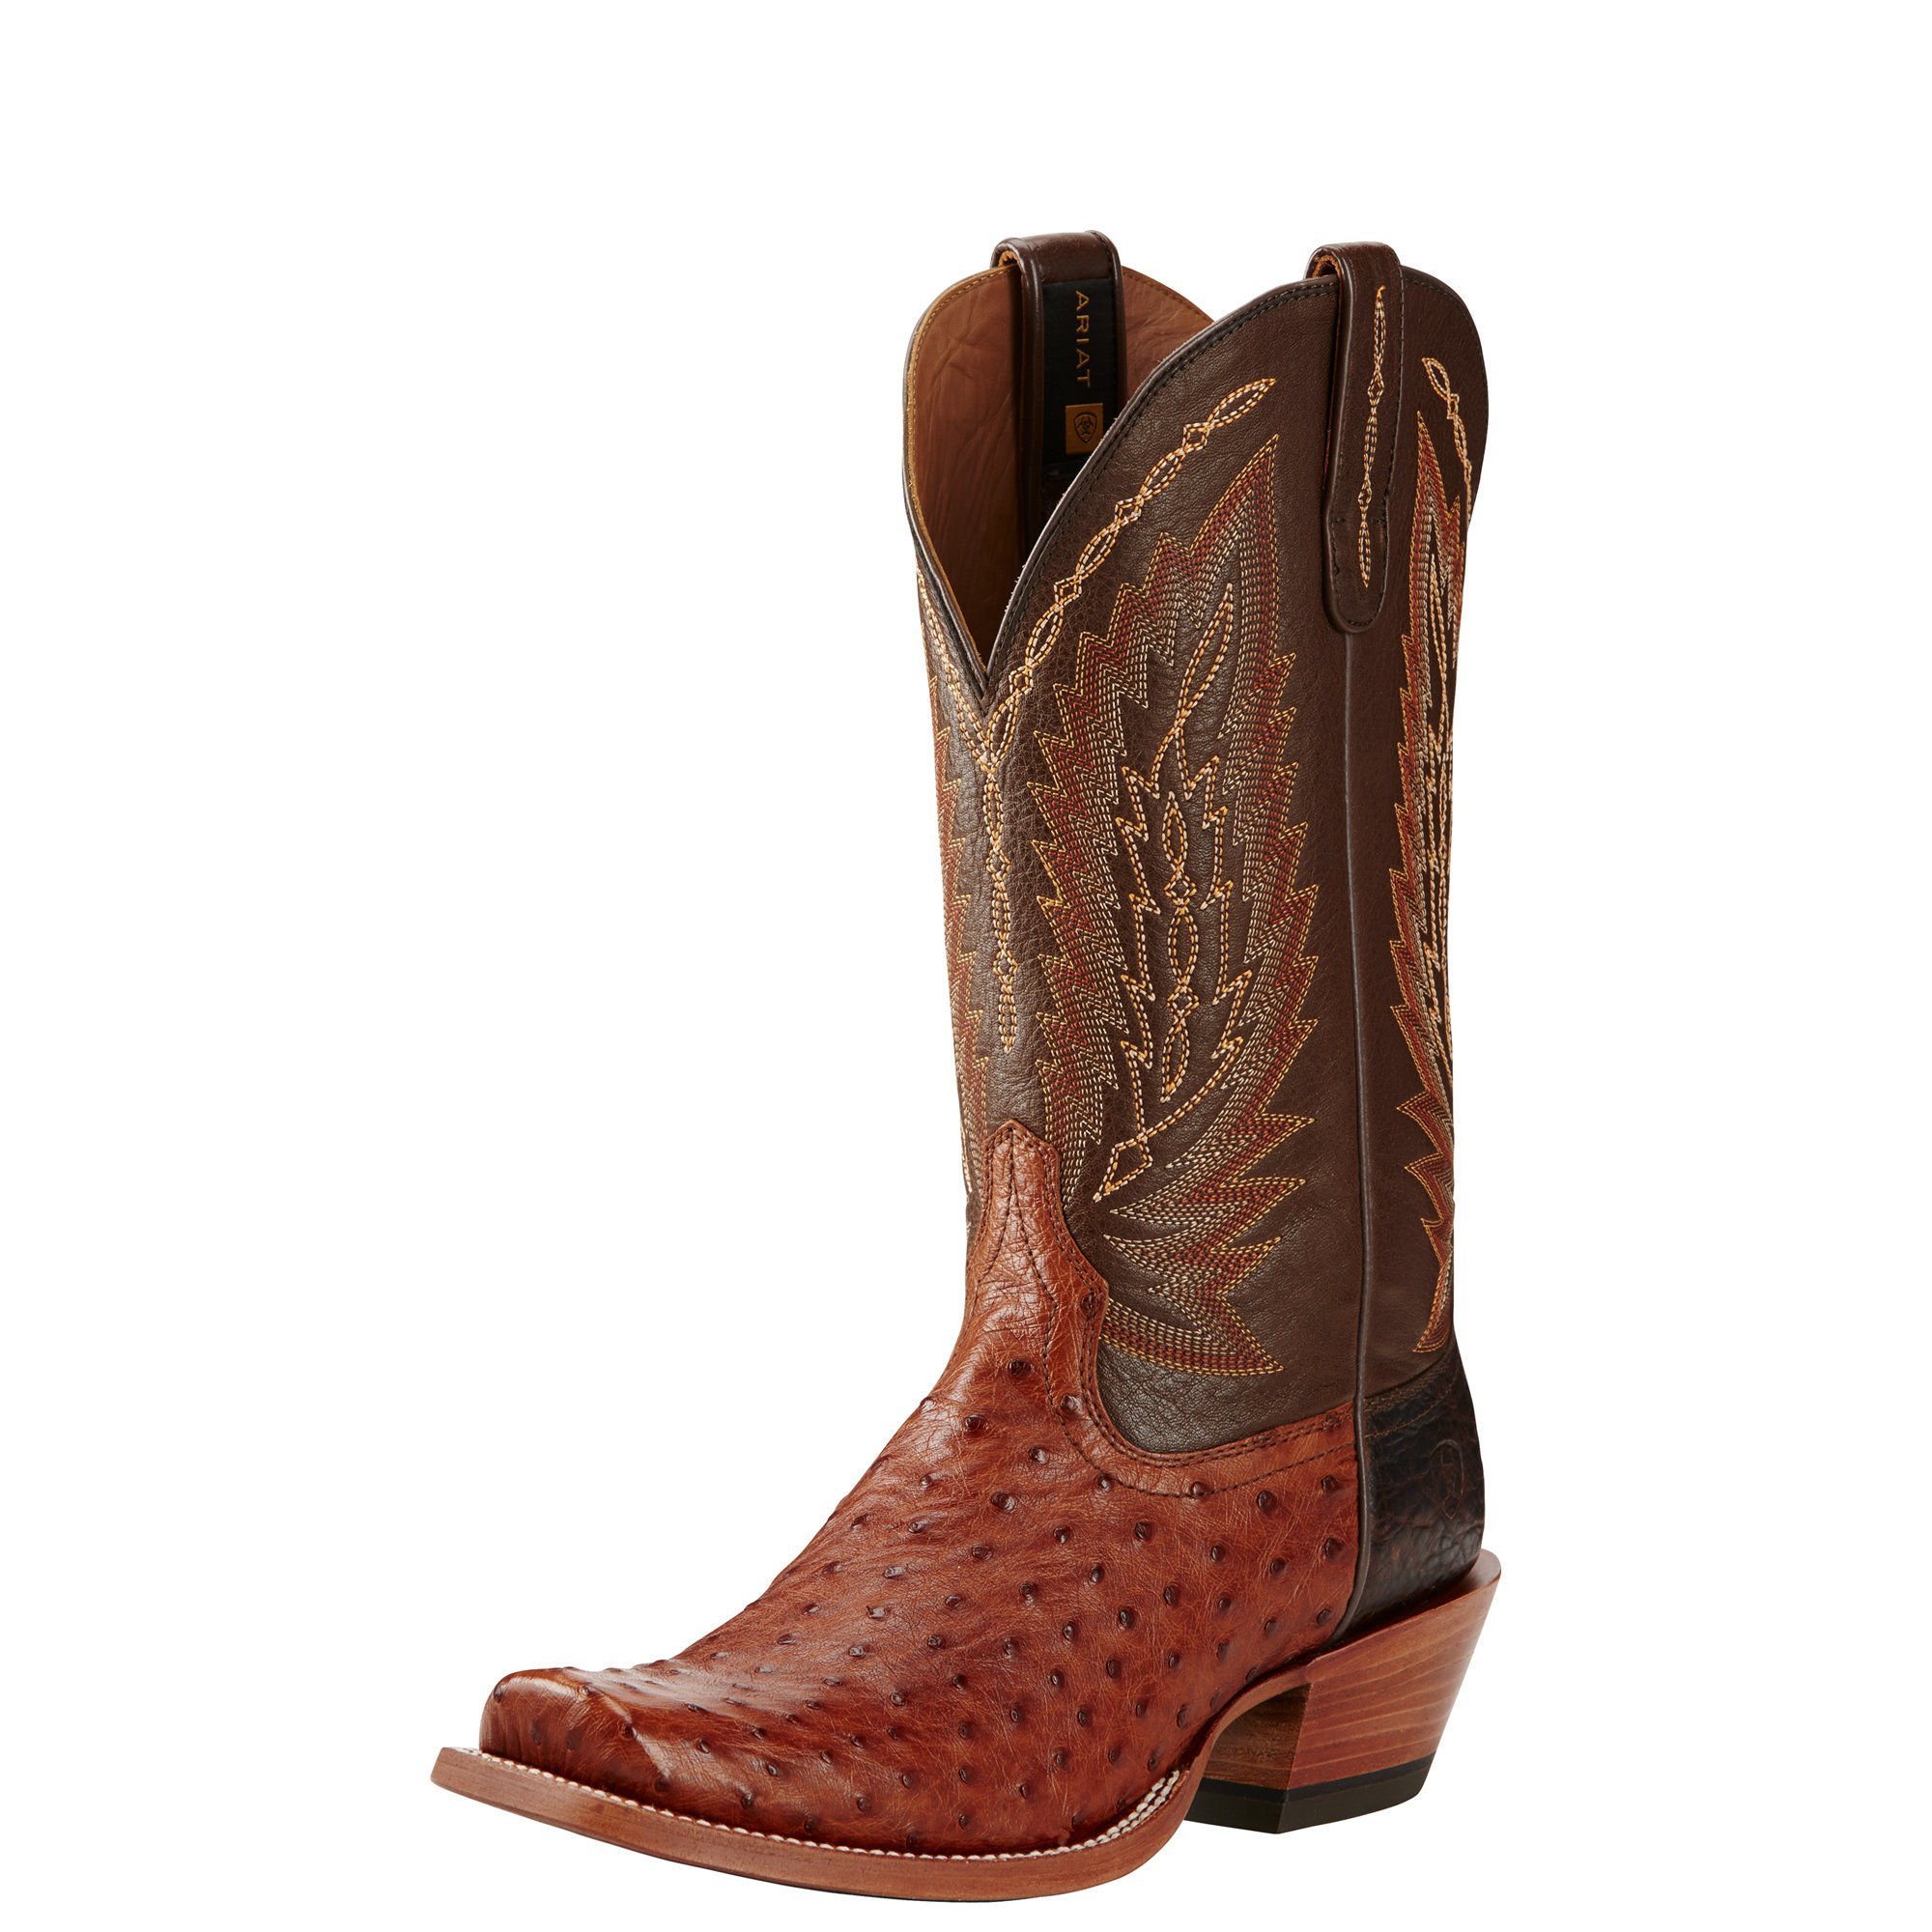 Ariat Men's Stock Show Western Cowboy Boot, Brandy Full Quill Ostrich/Royal Tobacco, 12 D US